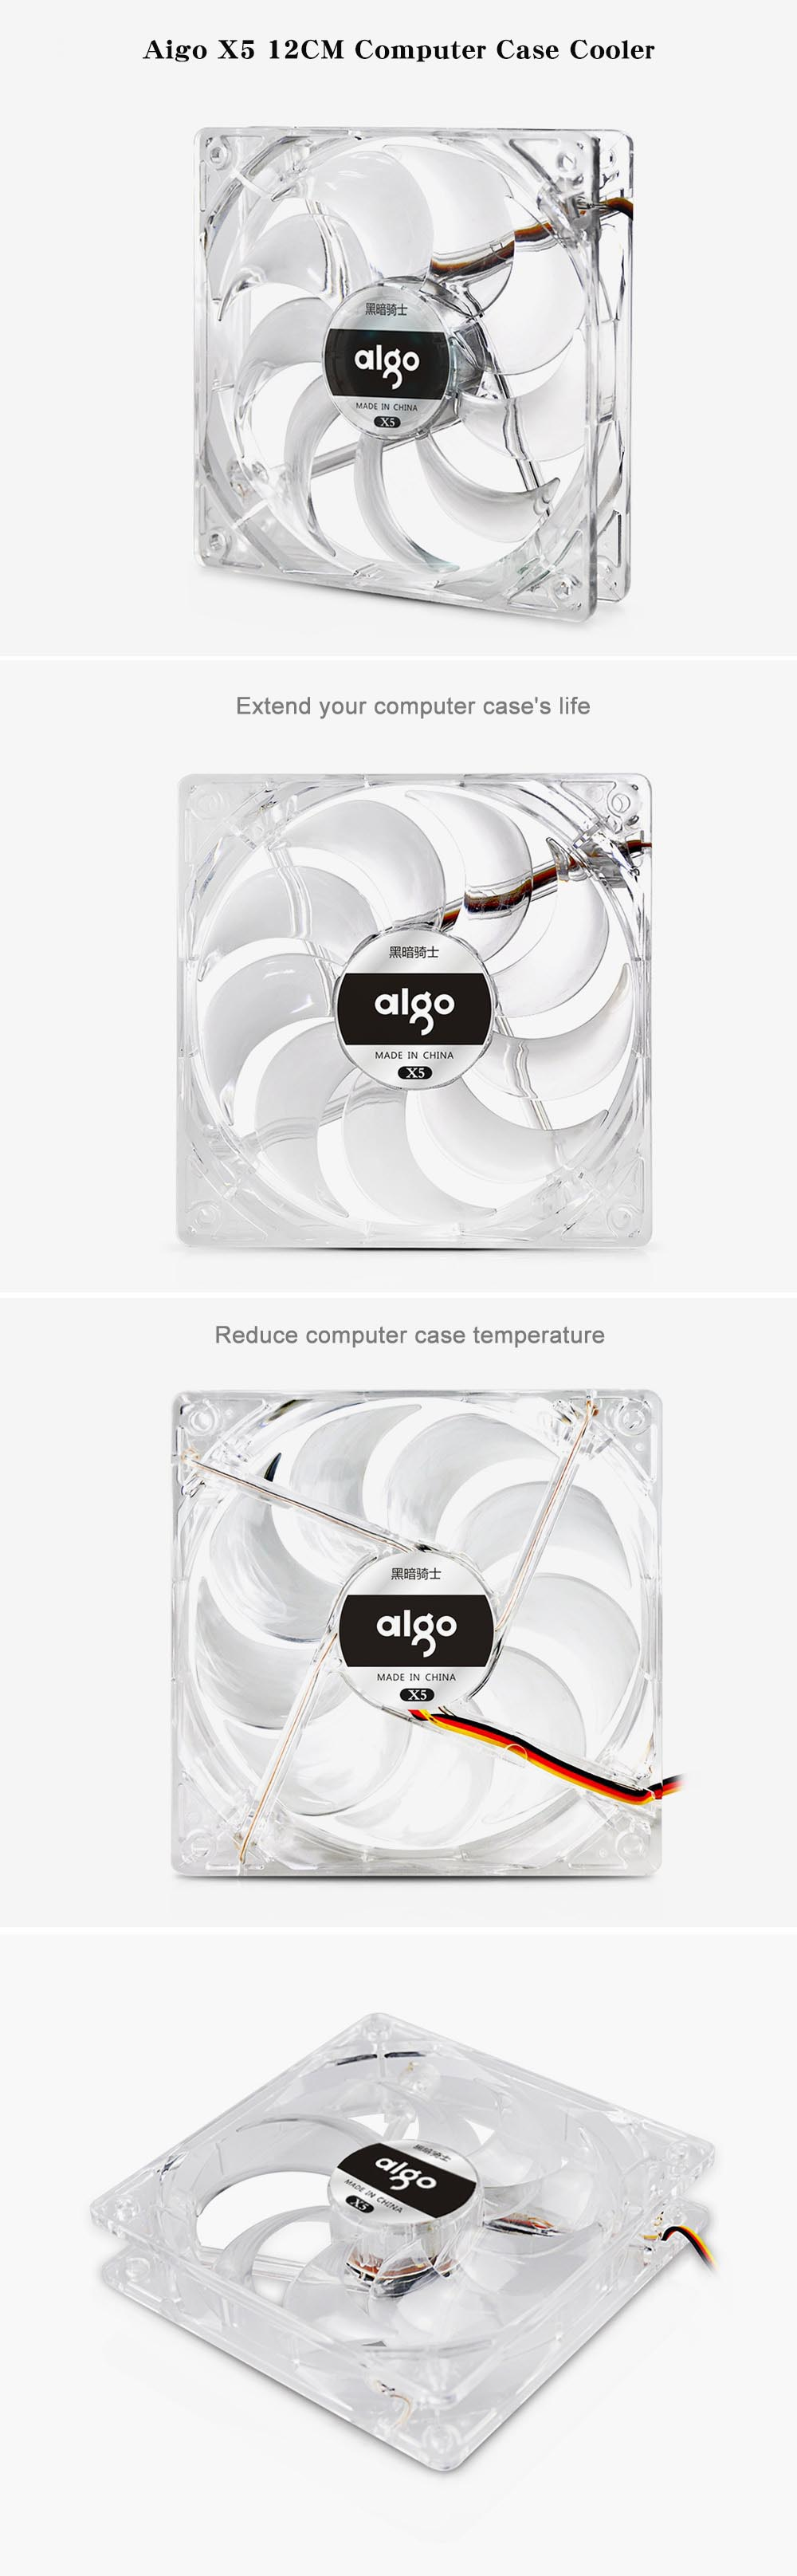 Aigo X5 12CM Computer Case Cooler with Red LED Light